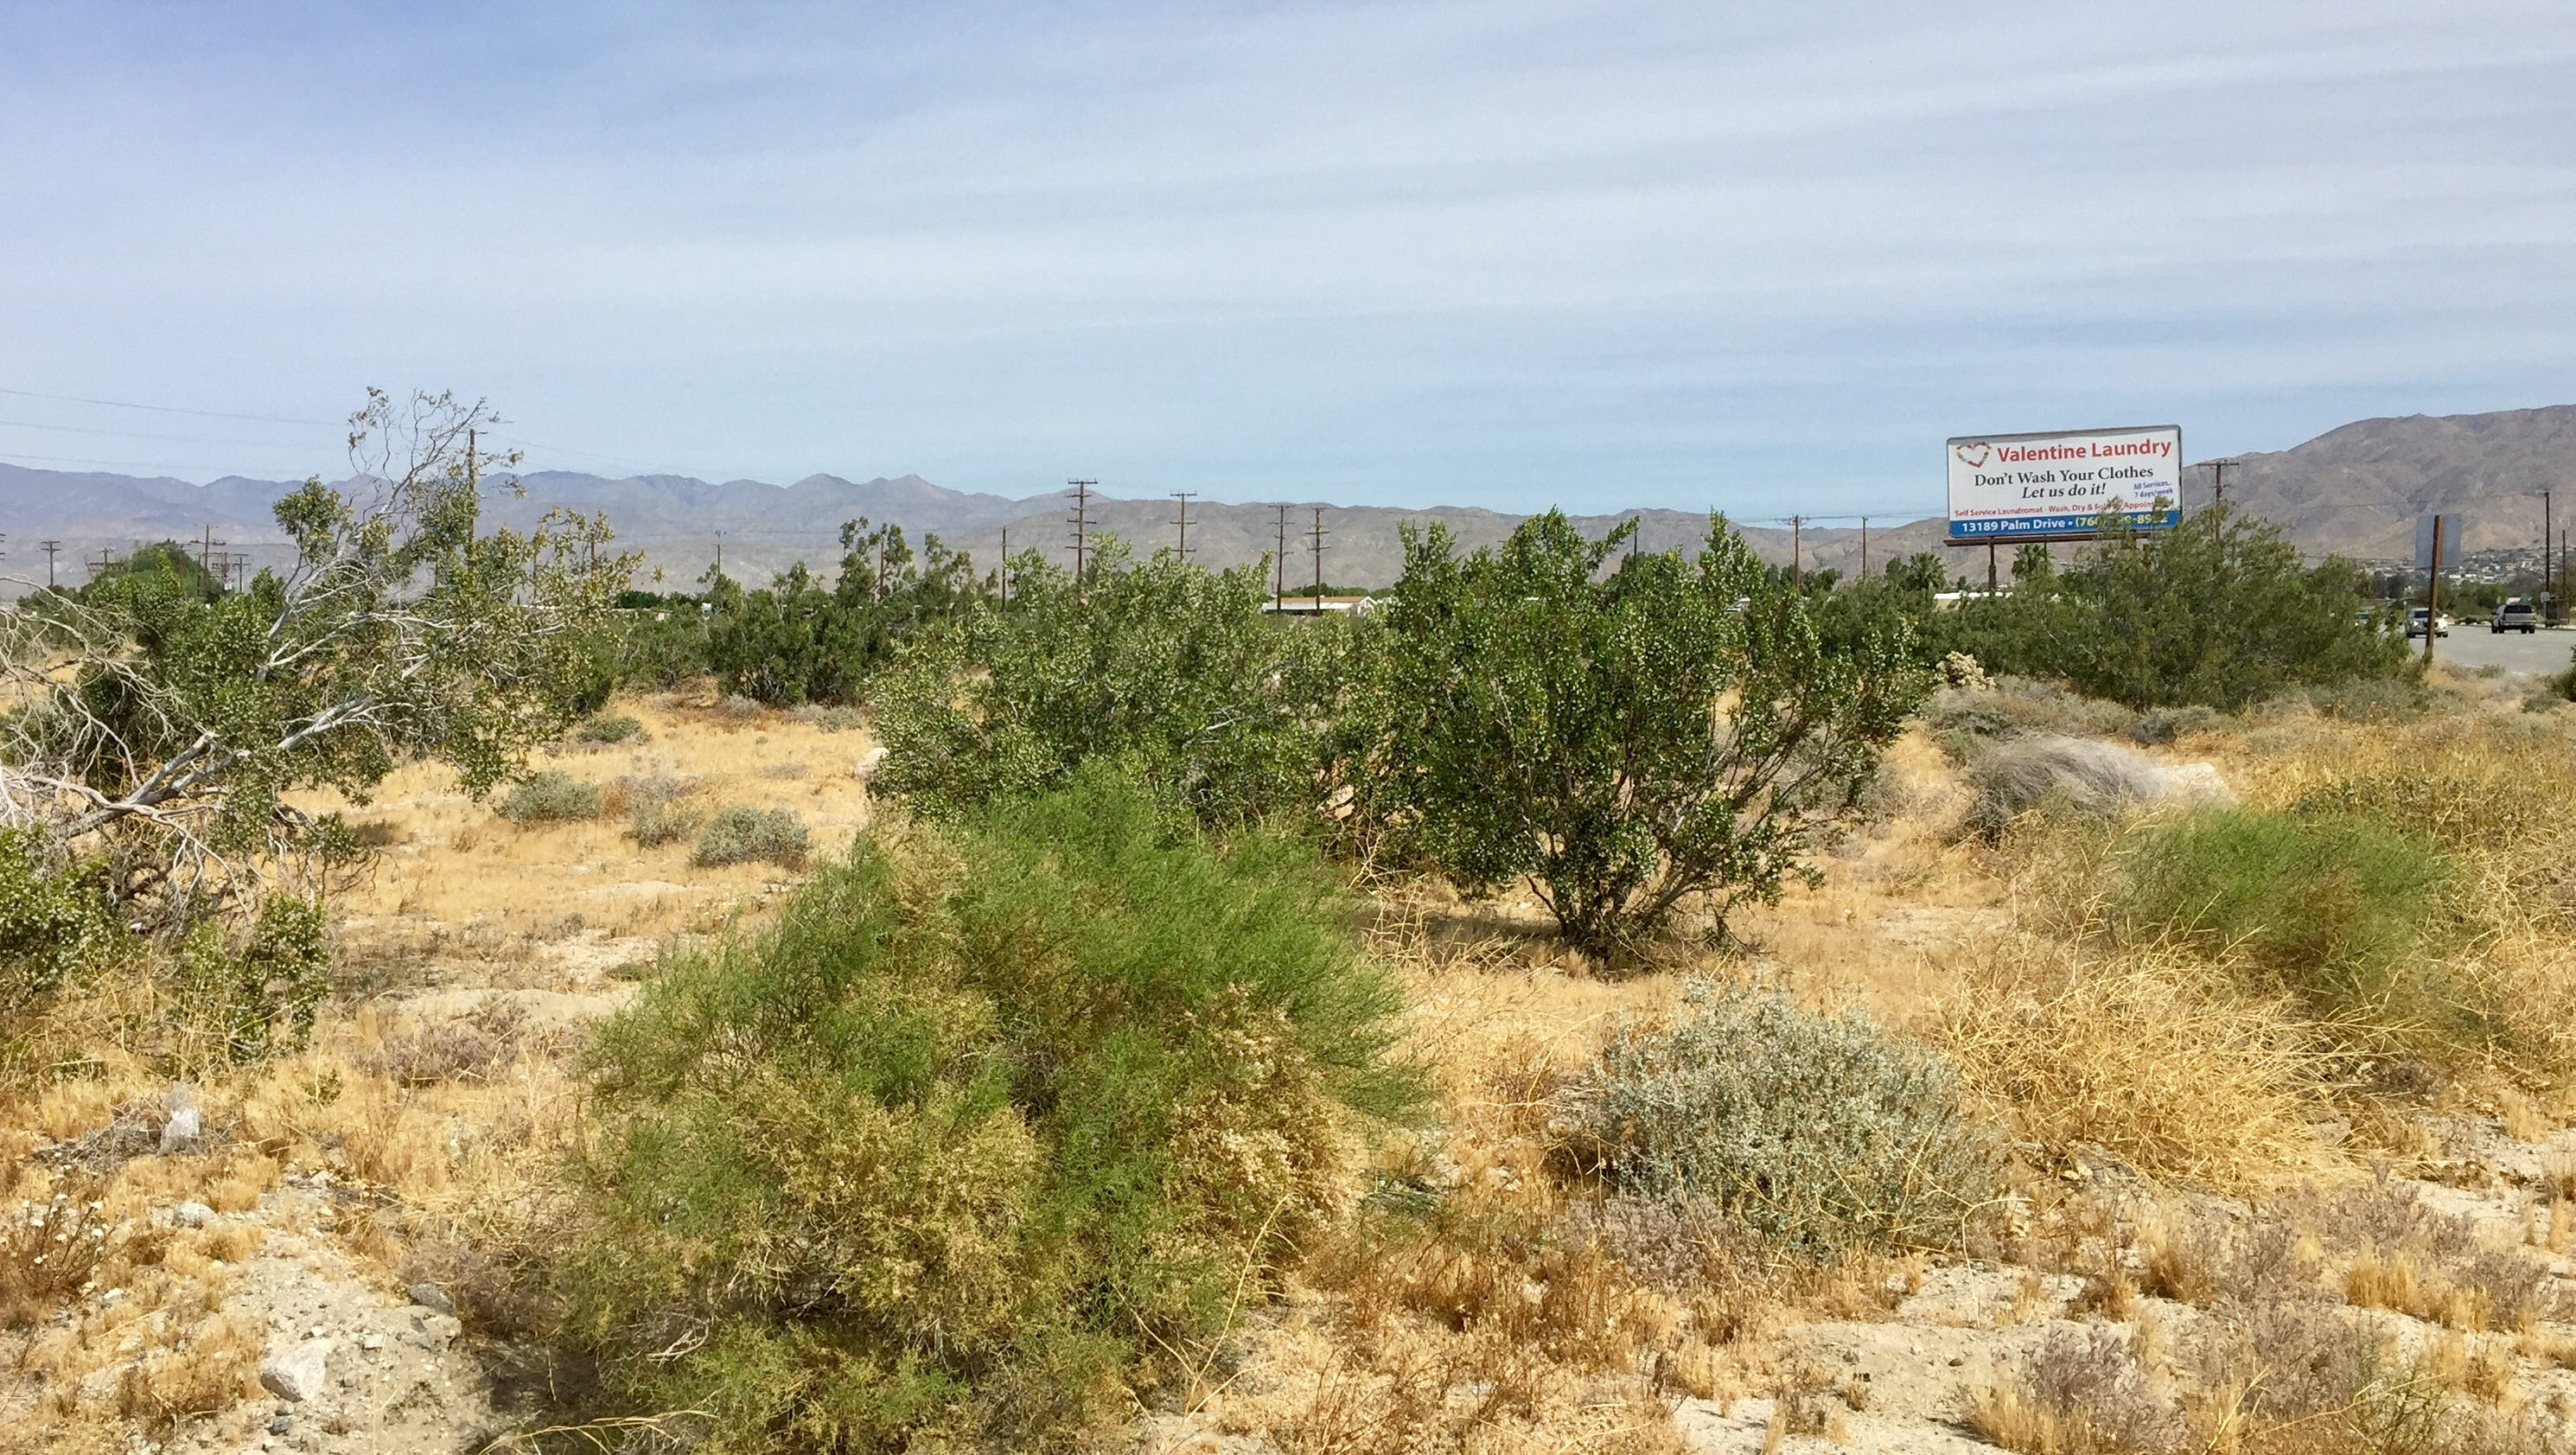 desert hot springs muslim The latest palm springs area news from the desert sun newspaper in the california desert coachella valley photos, obituaries and events calendar.